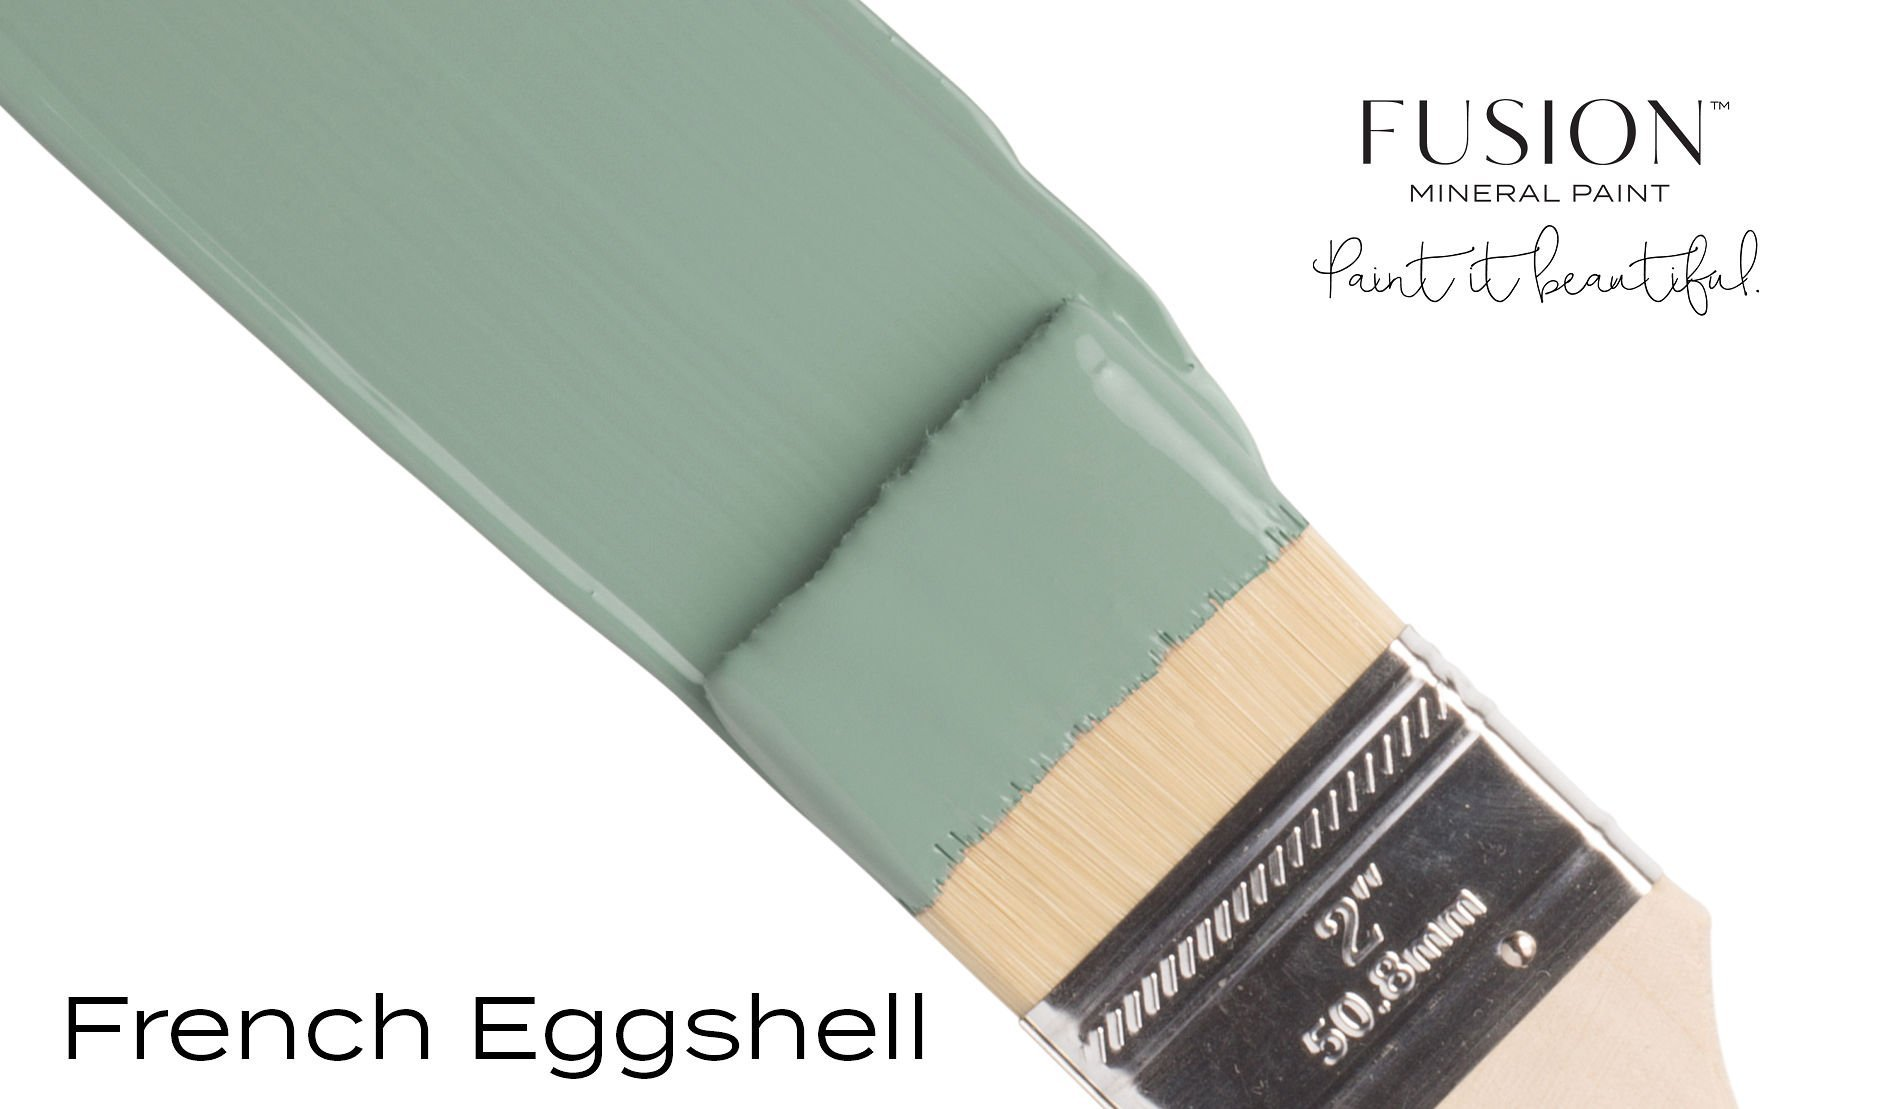 Fusion Mineral Paint - French Eggshell - Raggedy Bits.jpg